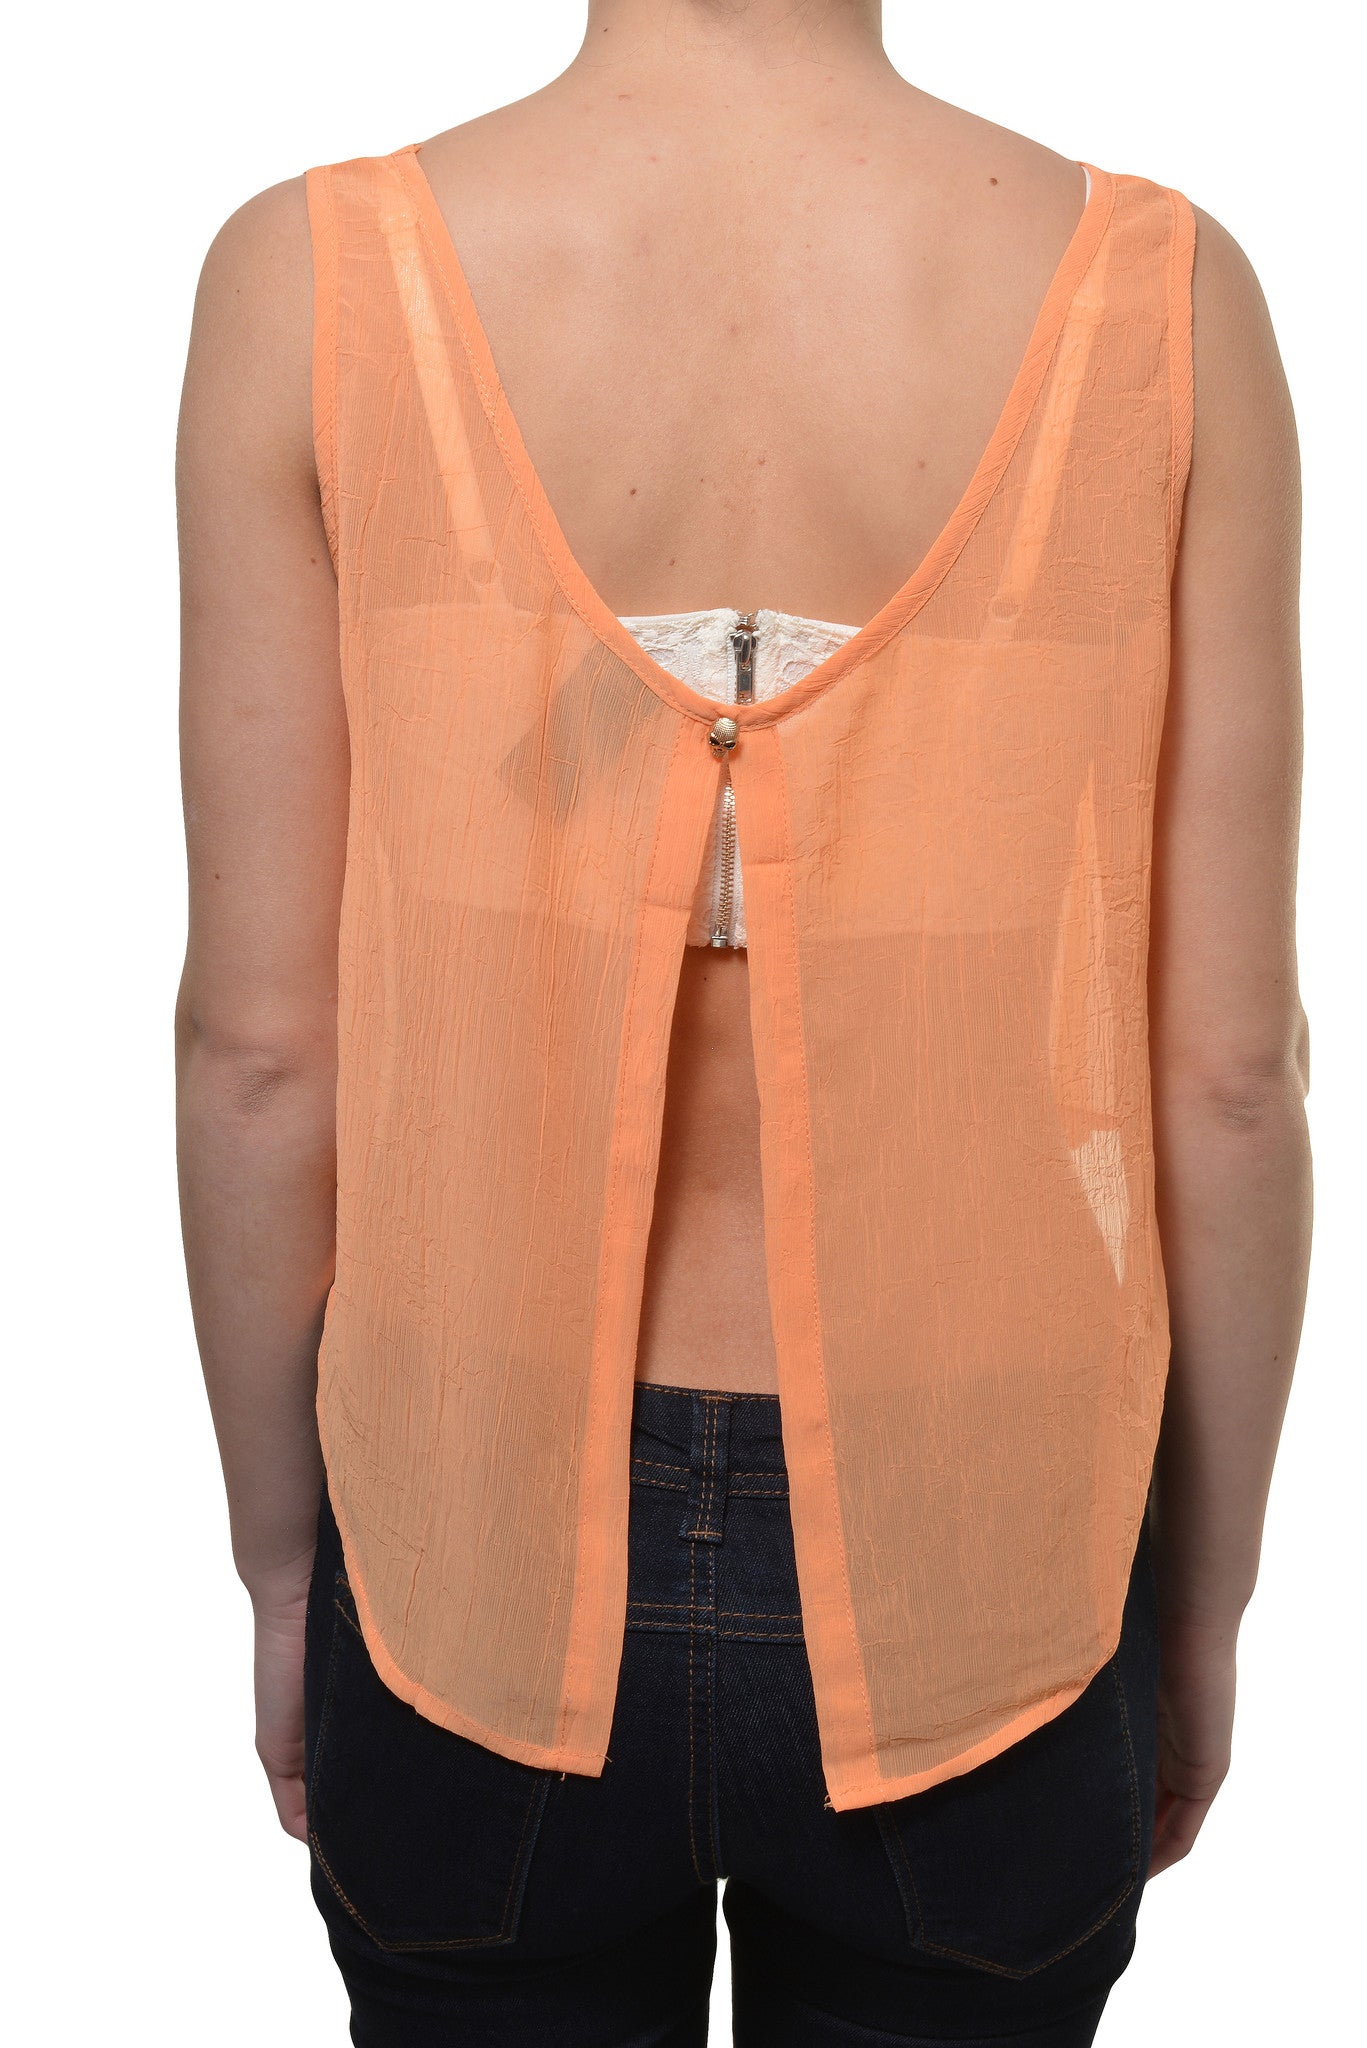 Skull Chiffon Open Back Layering Crop Top Shirt (Orange)